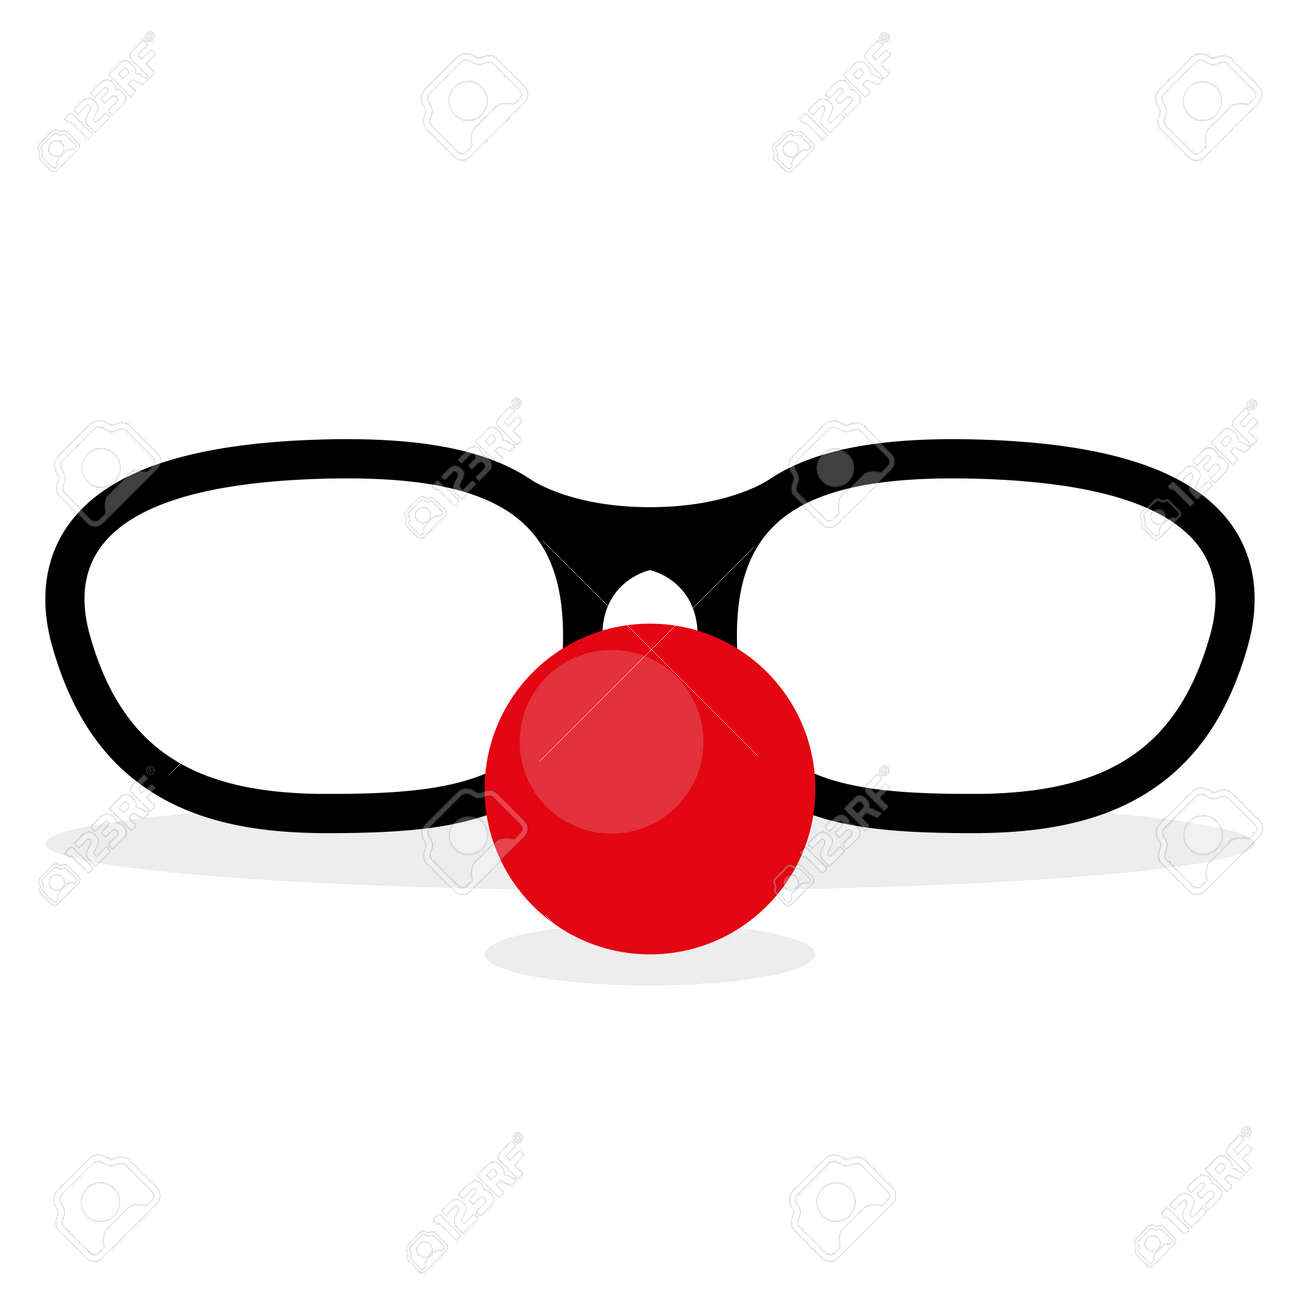 sunglasses and red clown nose template for a mask royalty free